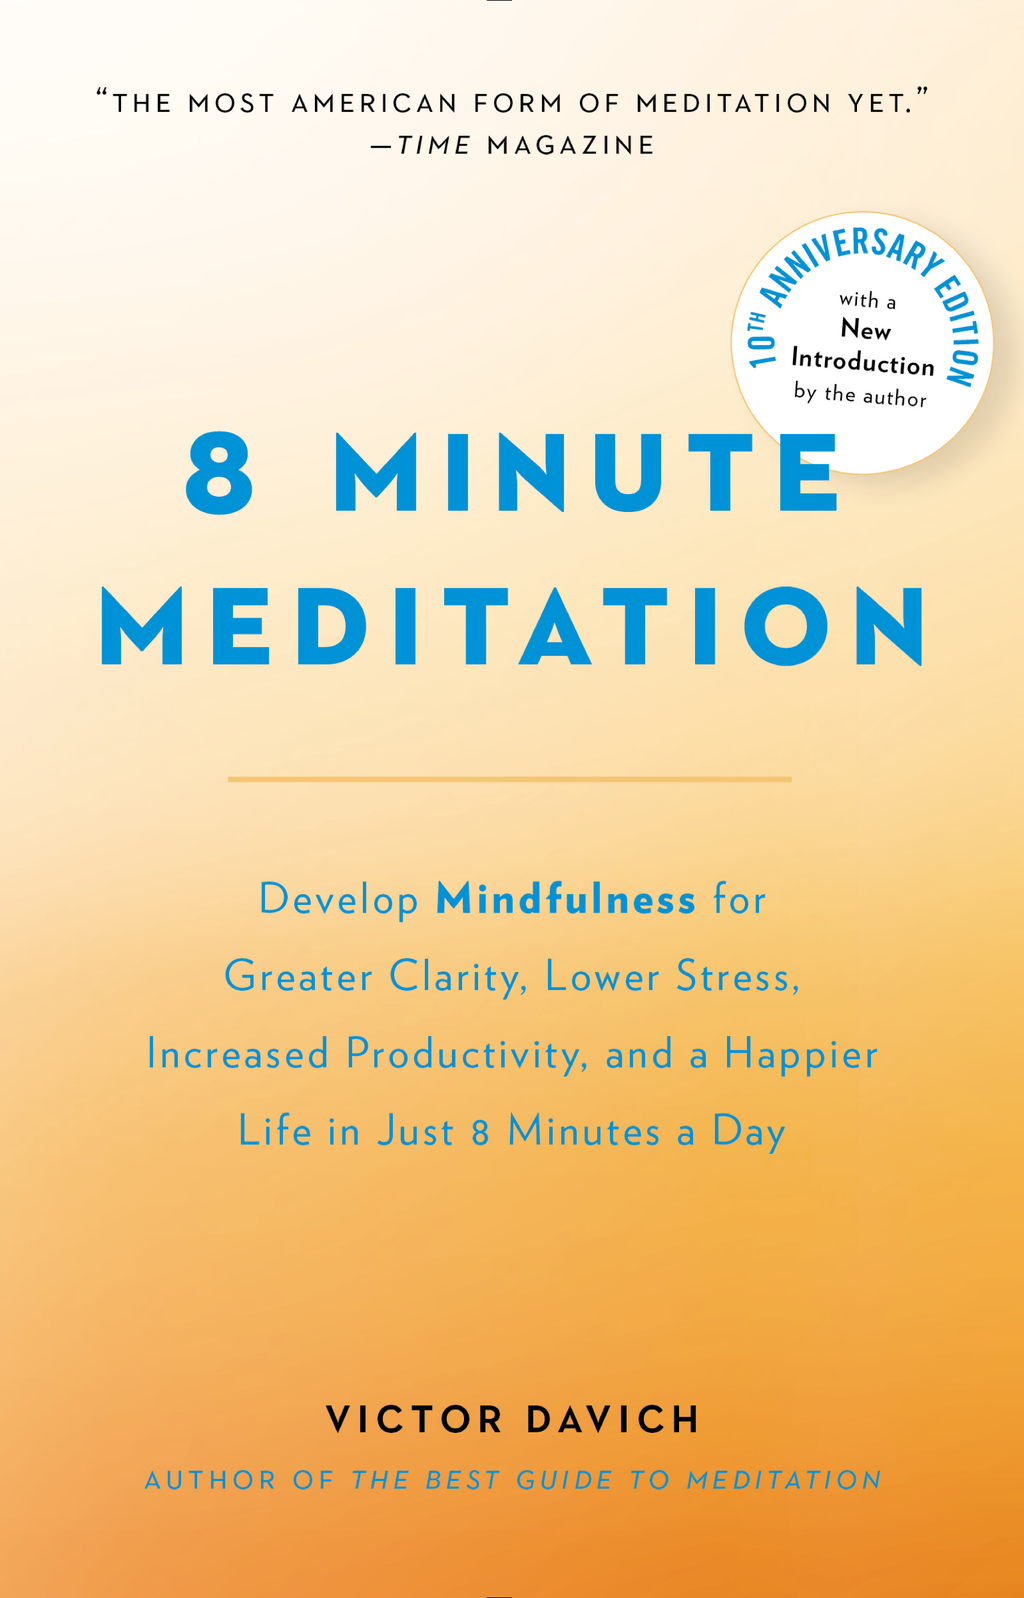 8 Minute Meditation Expanded Quiet Your Mind. Change Your Life.